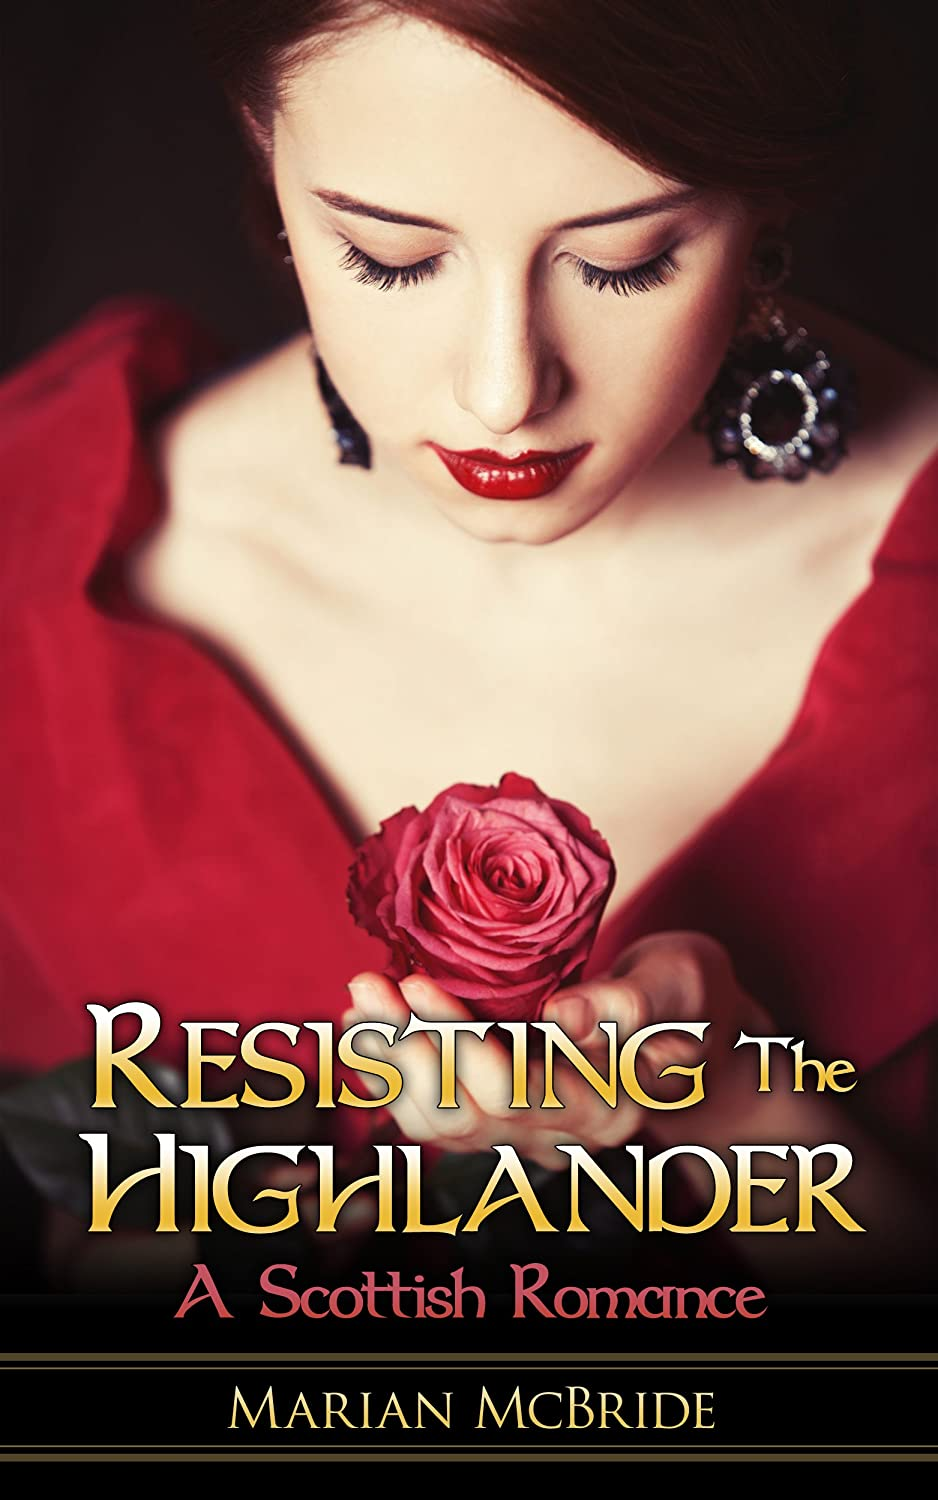 Resisting the Highlander by Marian McBride